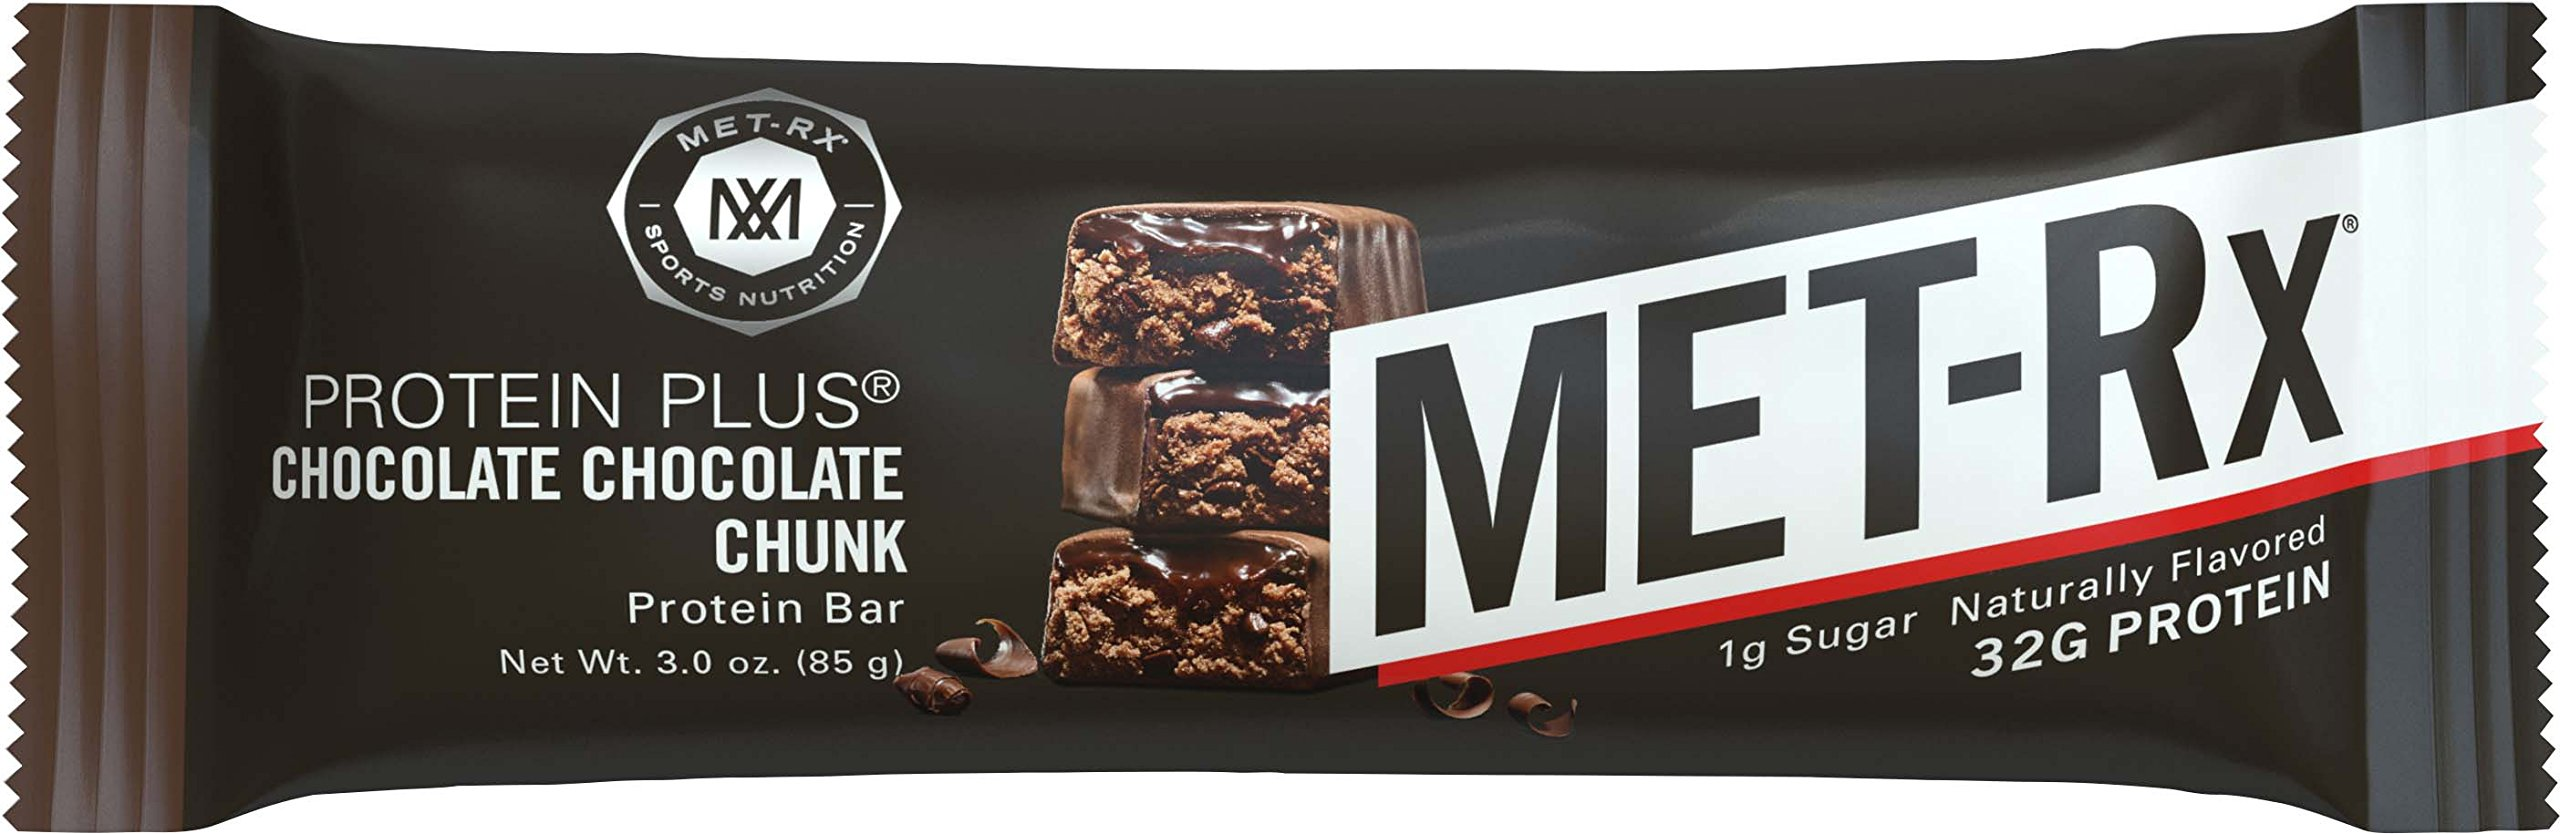 MET-Rx Protein Plus Bar, Great as Healthy Meal Replacement, Snack, and Help Support Energy, Gluten Free, Chocolate Chocolate Chunk, 85 g, 9 Count